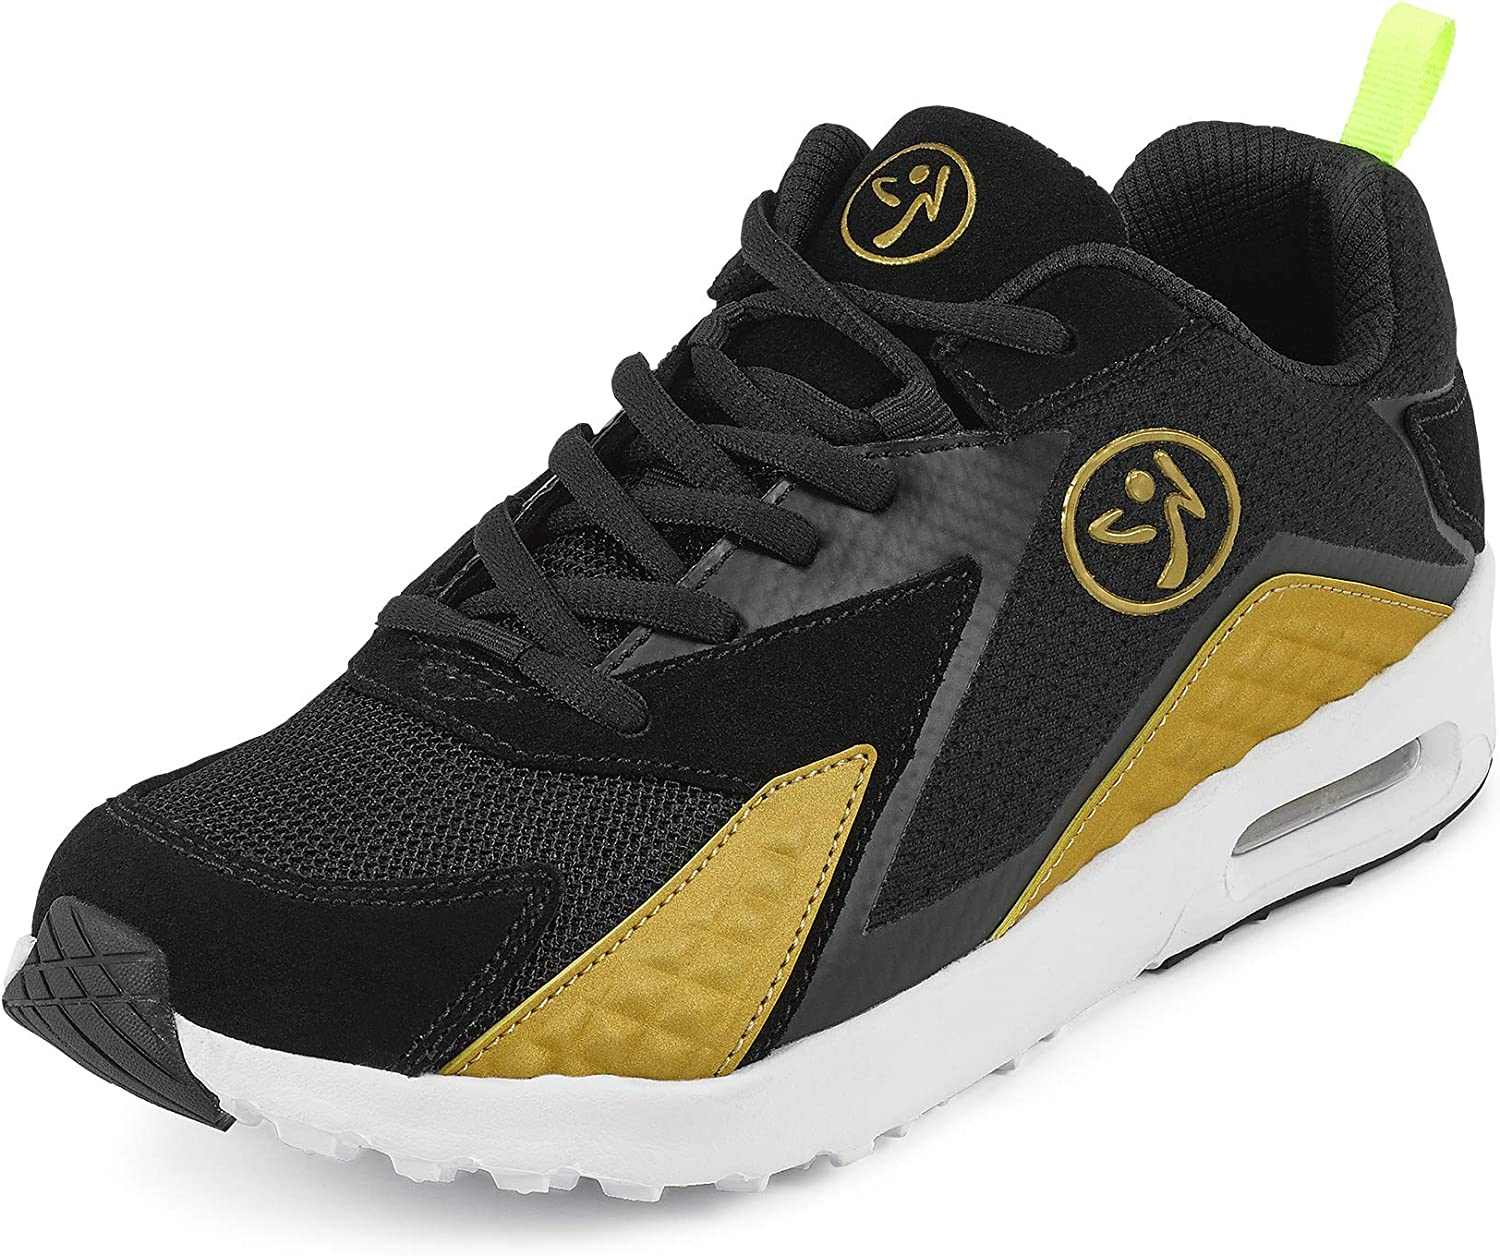 Zumba Athletic Air Classic Gym Fitness Sneakers Dance Workout Shoe